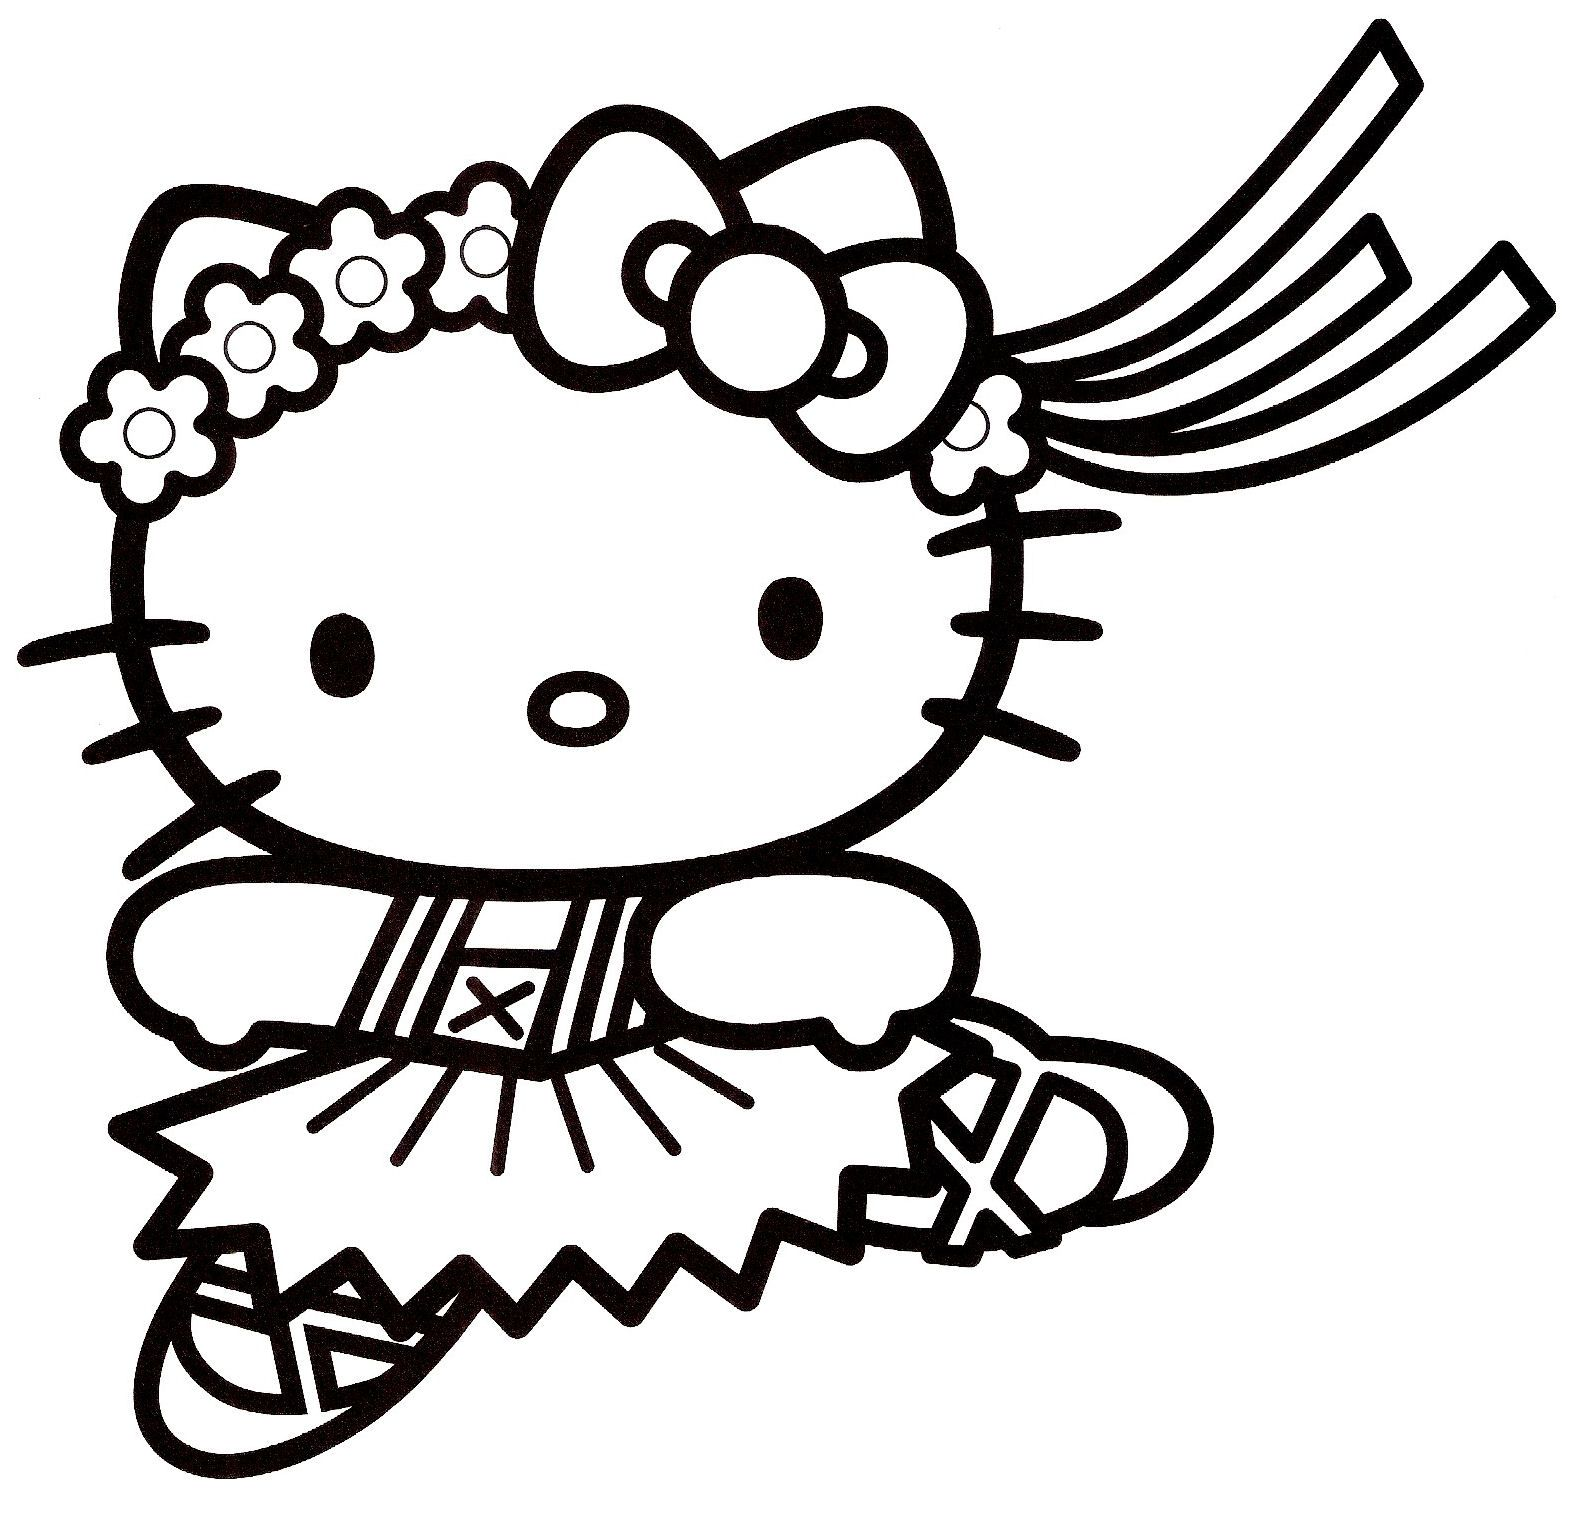 Coloriage Hello Kitty   colorier Dessin   imprimer